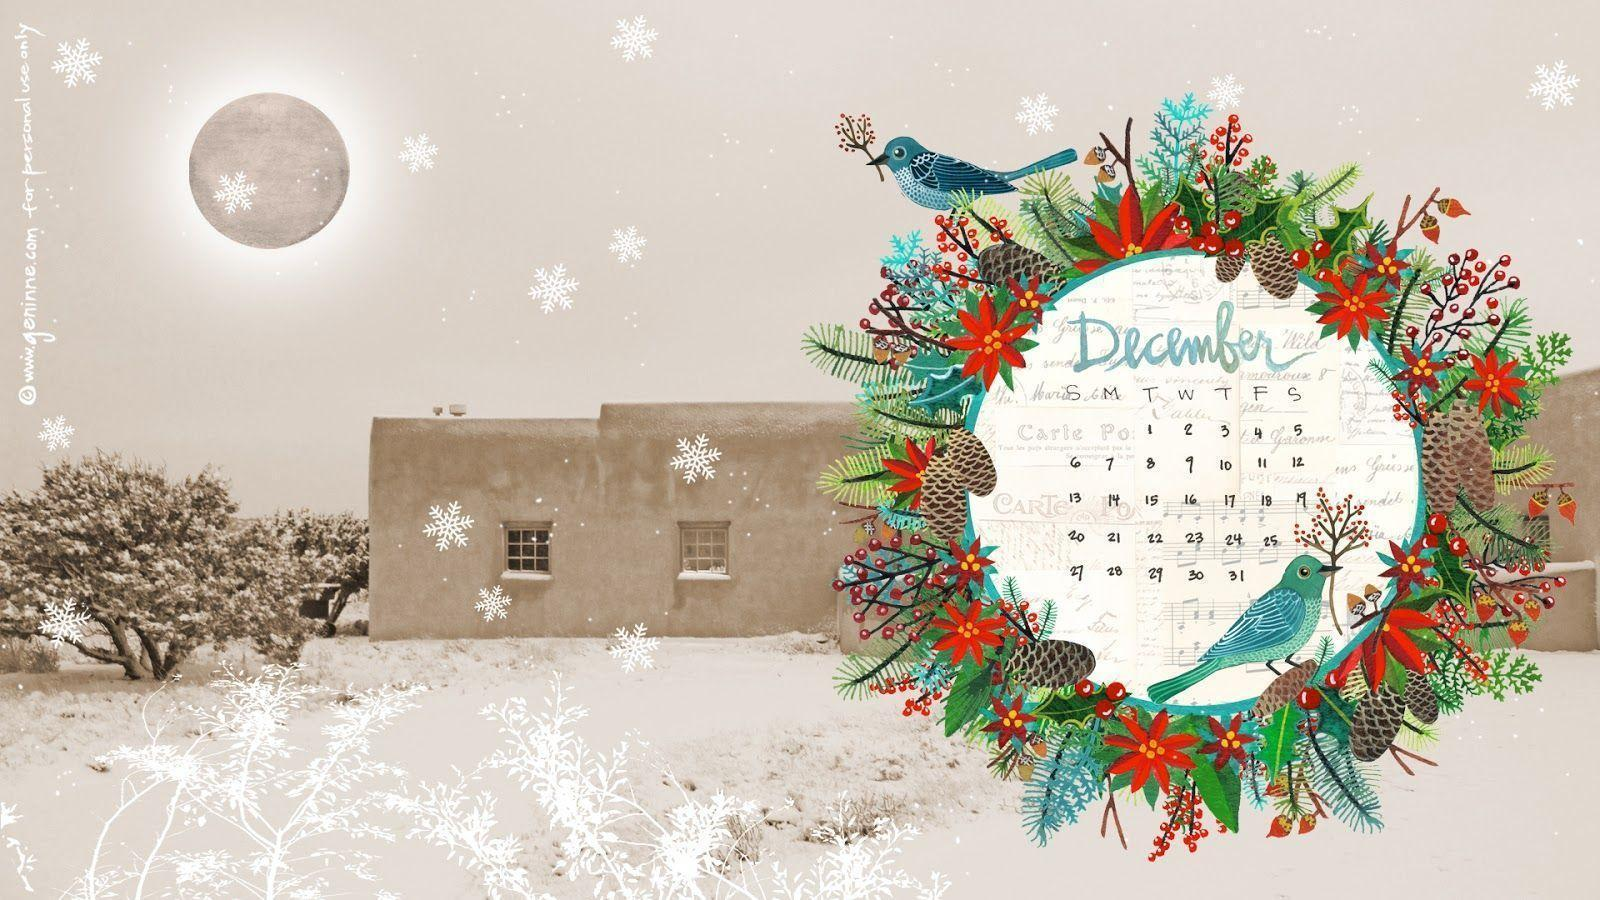 Desktop Wallpapers Calendar December 2016 - Wallpaper Cave